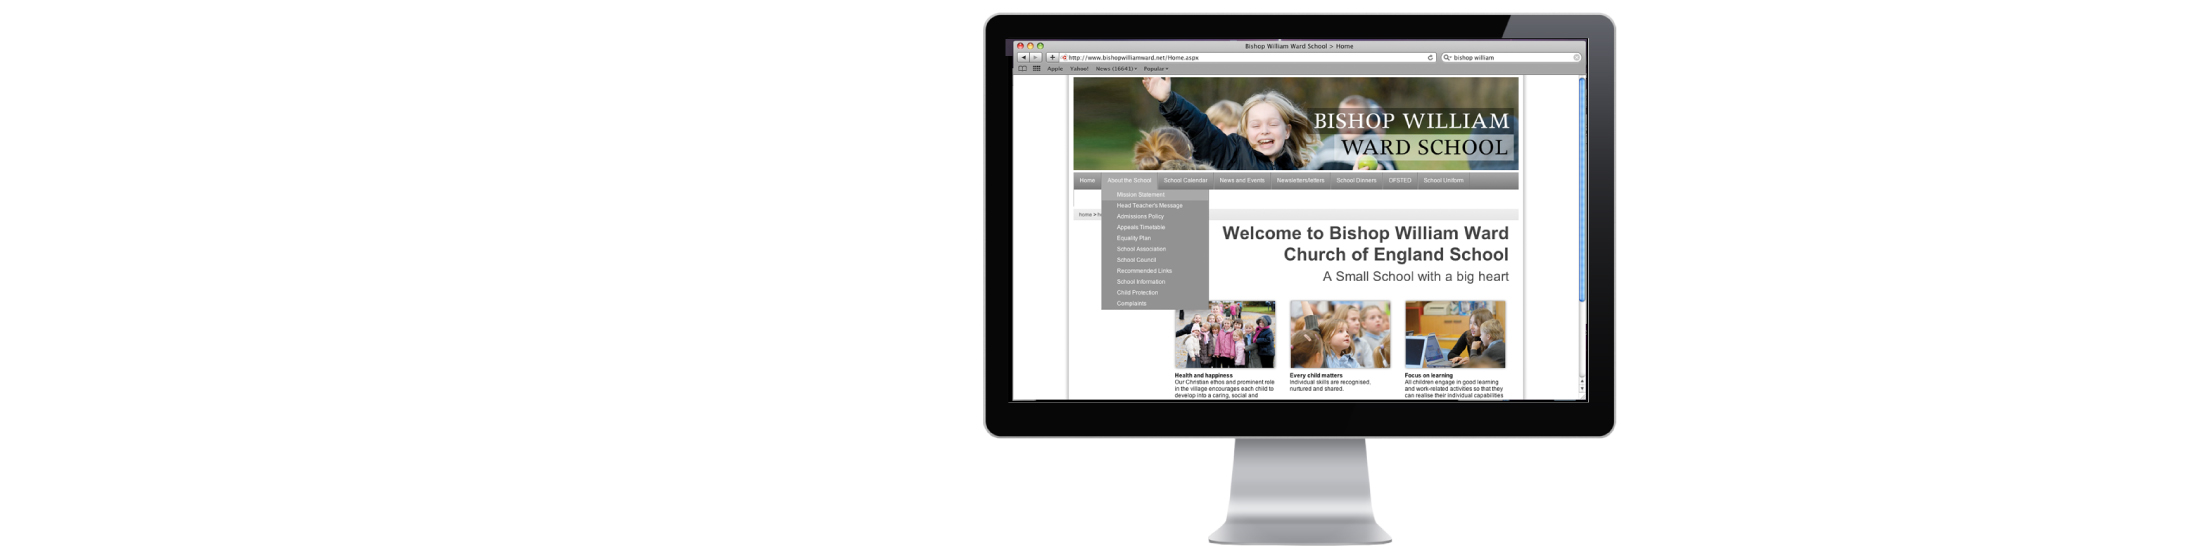 Bishop William Ward website designed and developed by Vancols